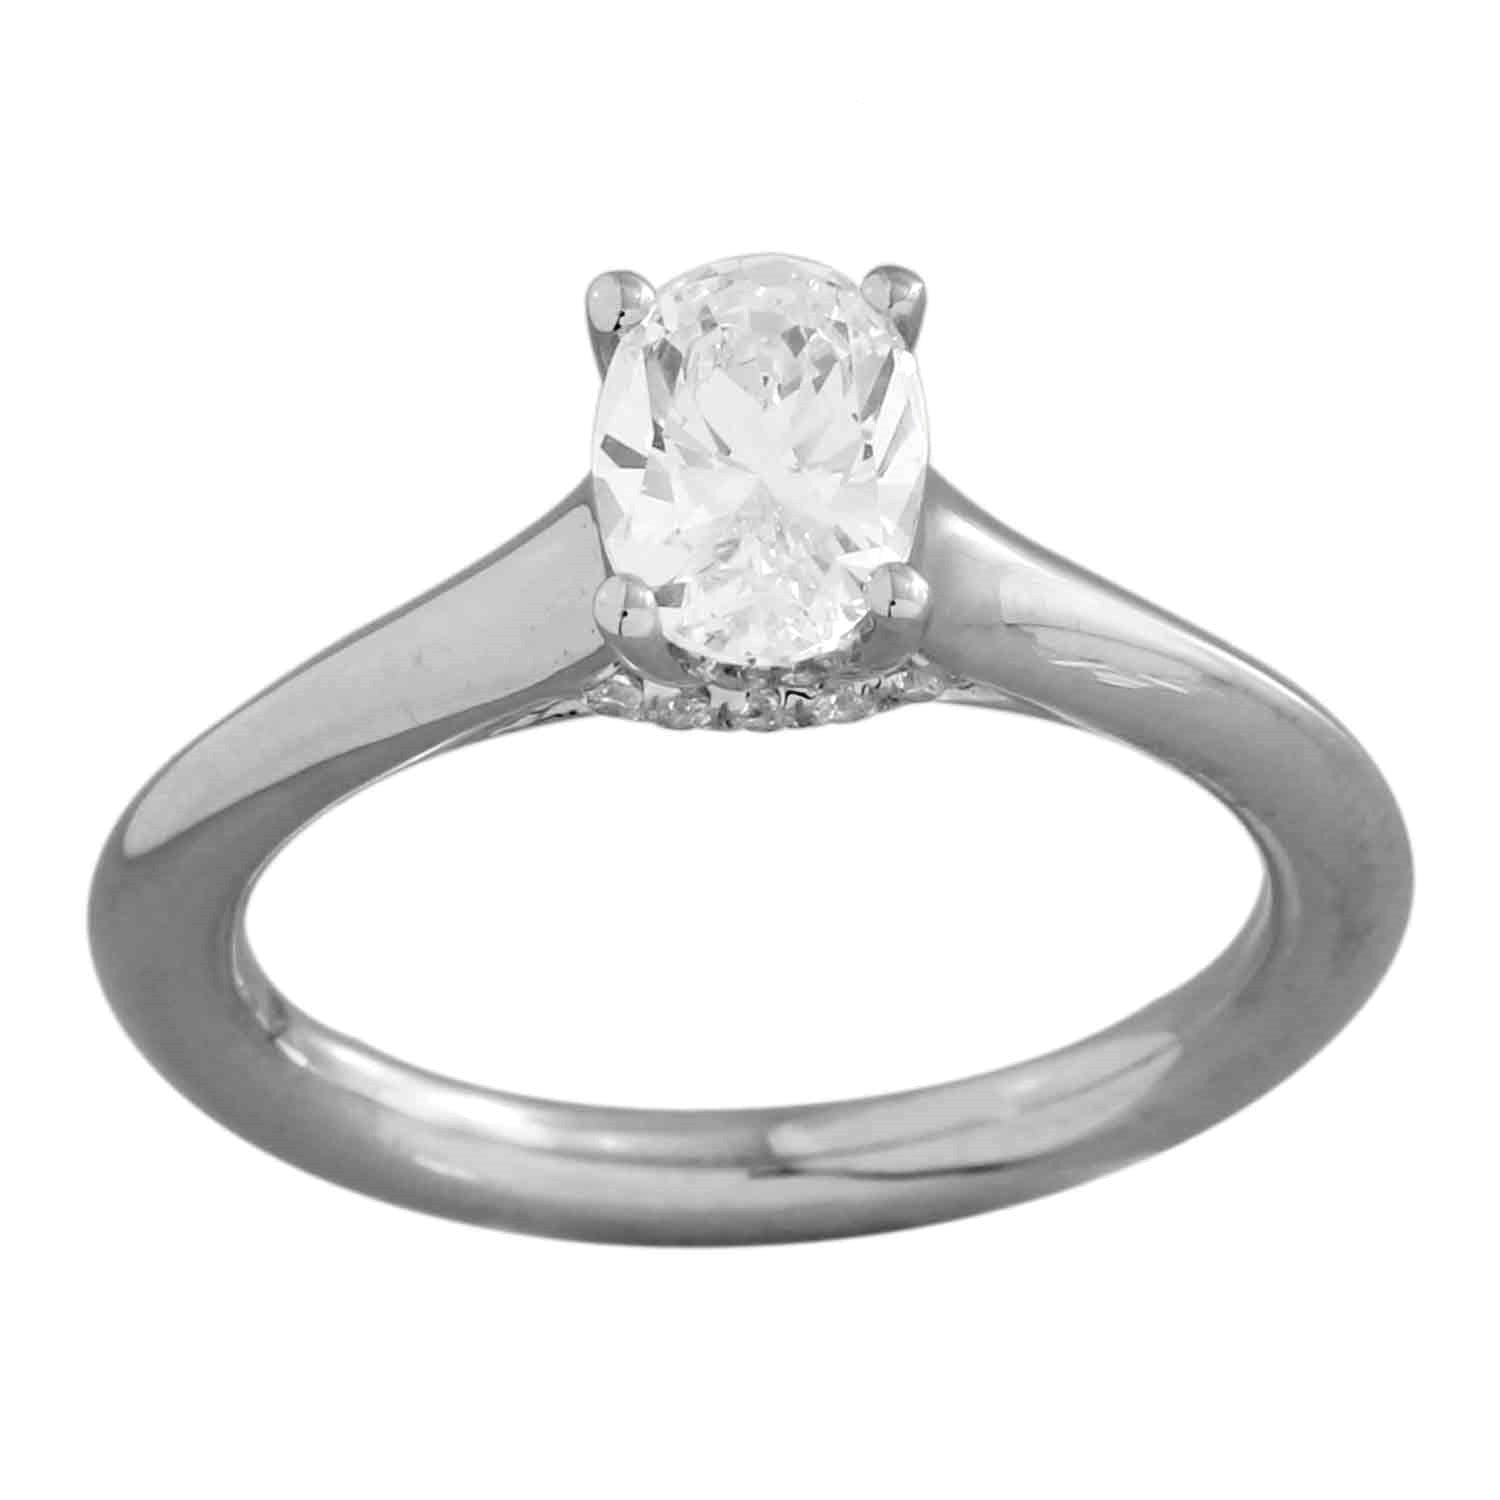 Solitaire Plus Series Engagement Ring-Oval Cut Center Diamond made in 14k White gold